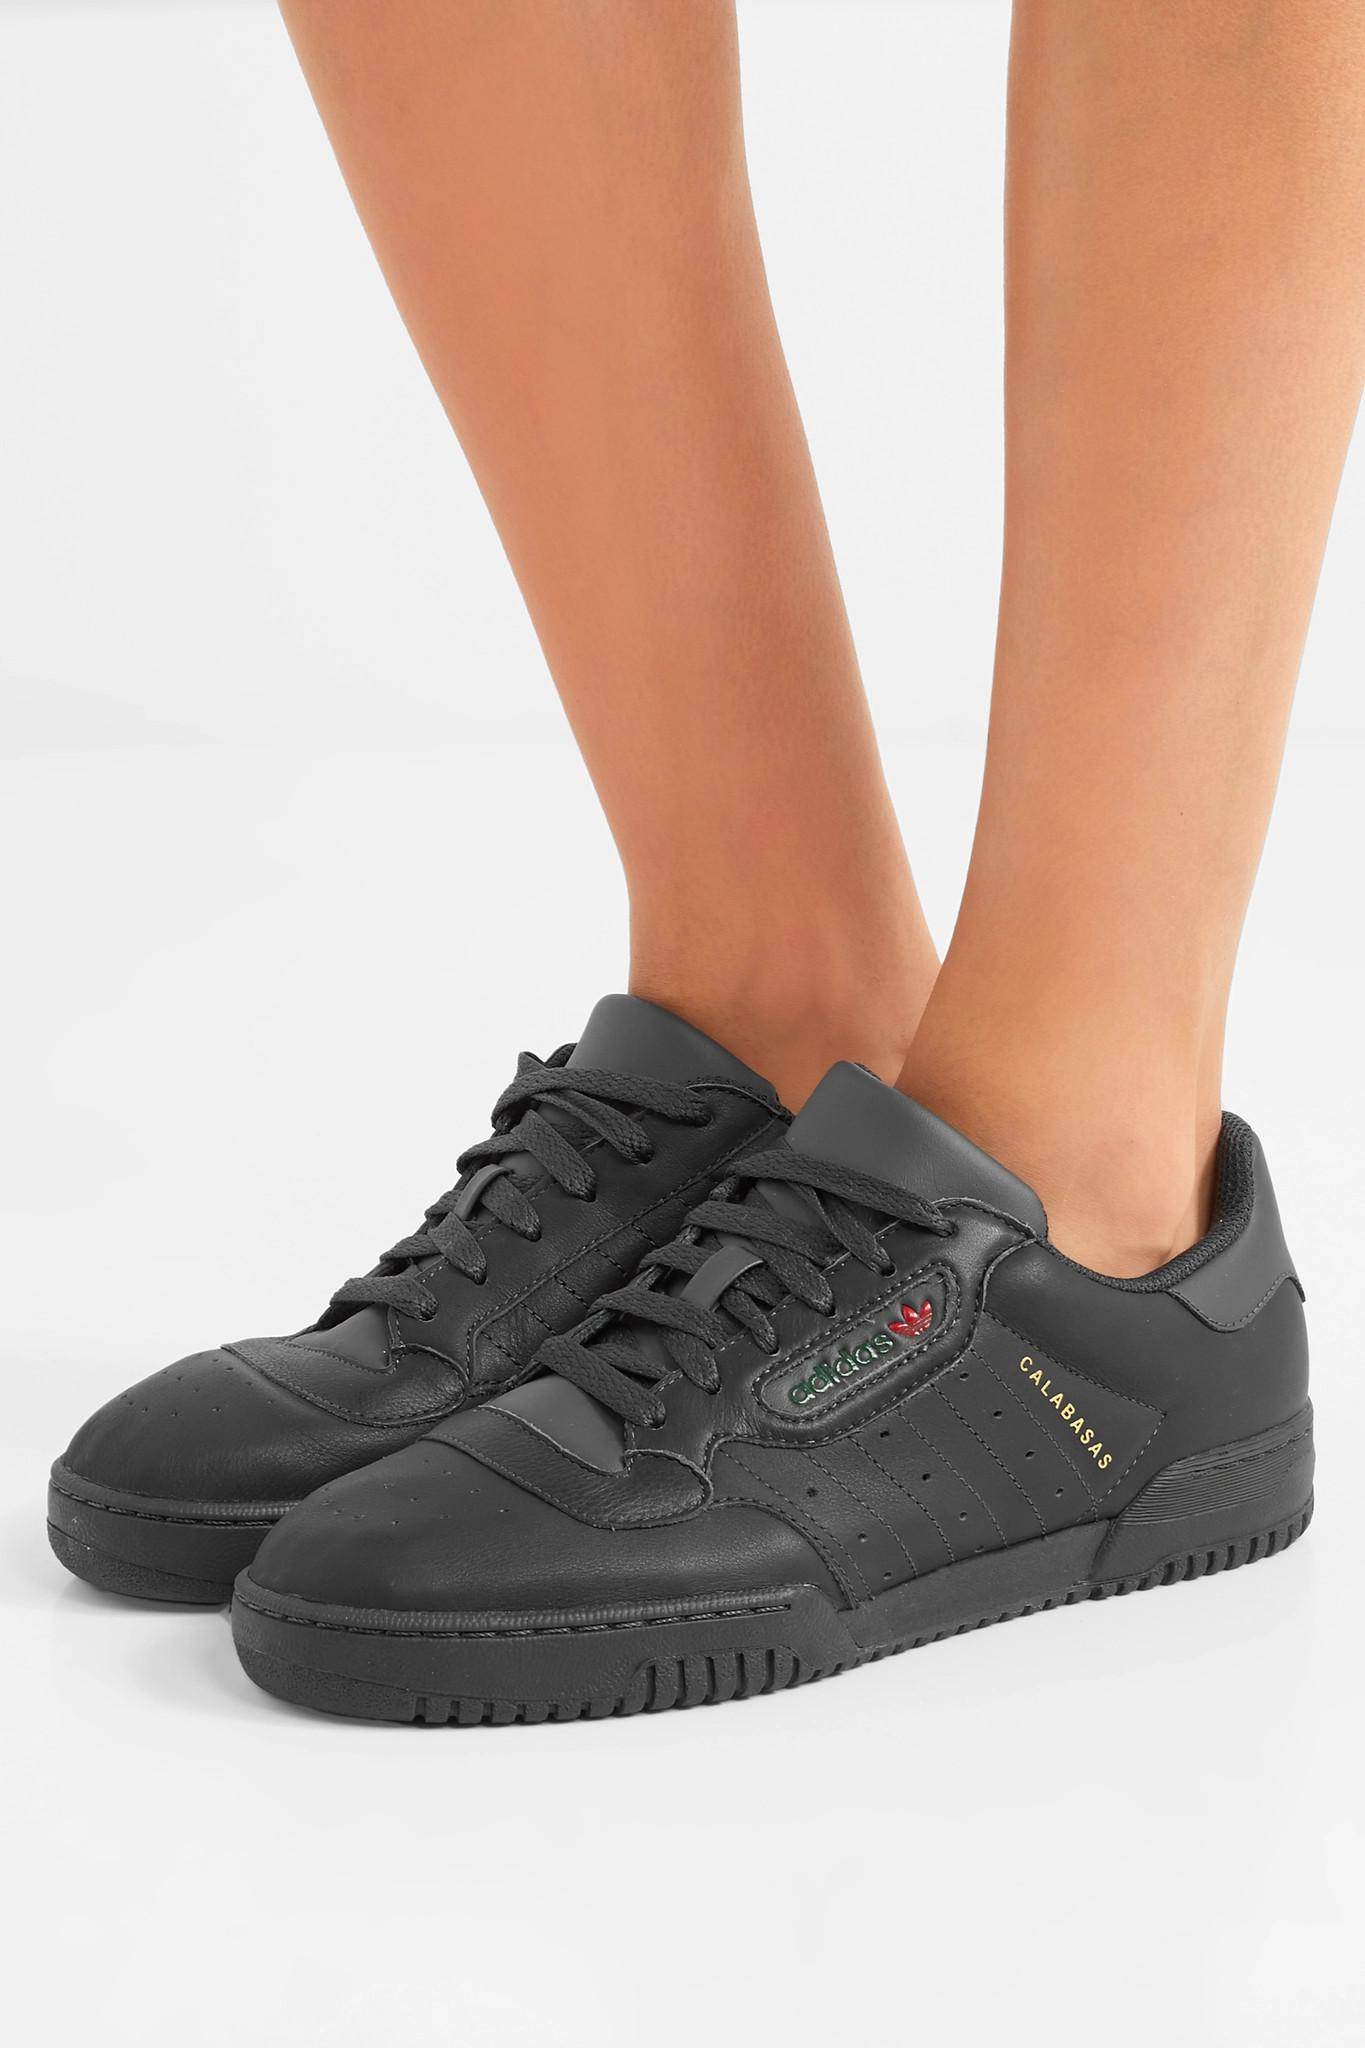 Calabasas Originals Adidas Powerphase Yeezy Sneakers In Leather tBFPBx